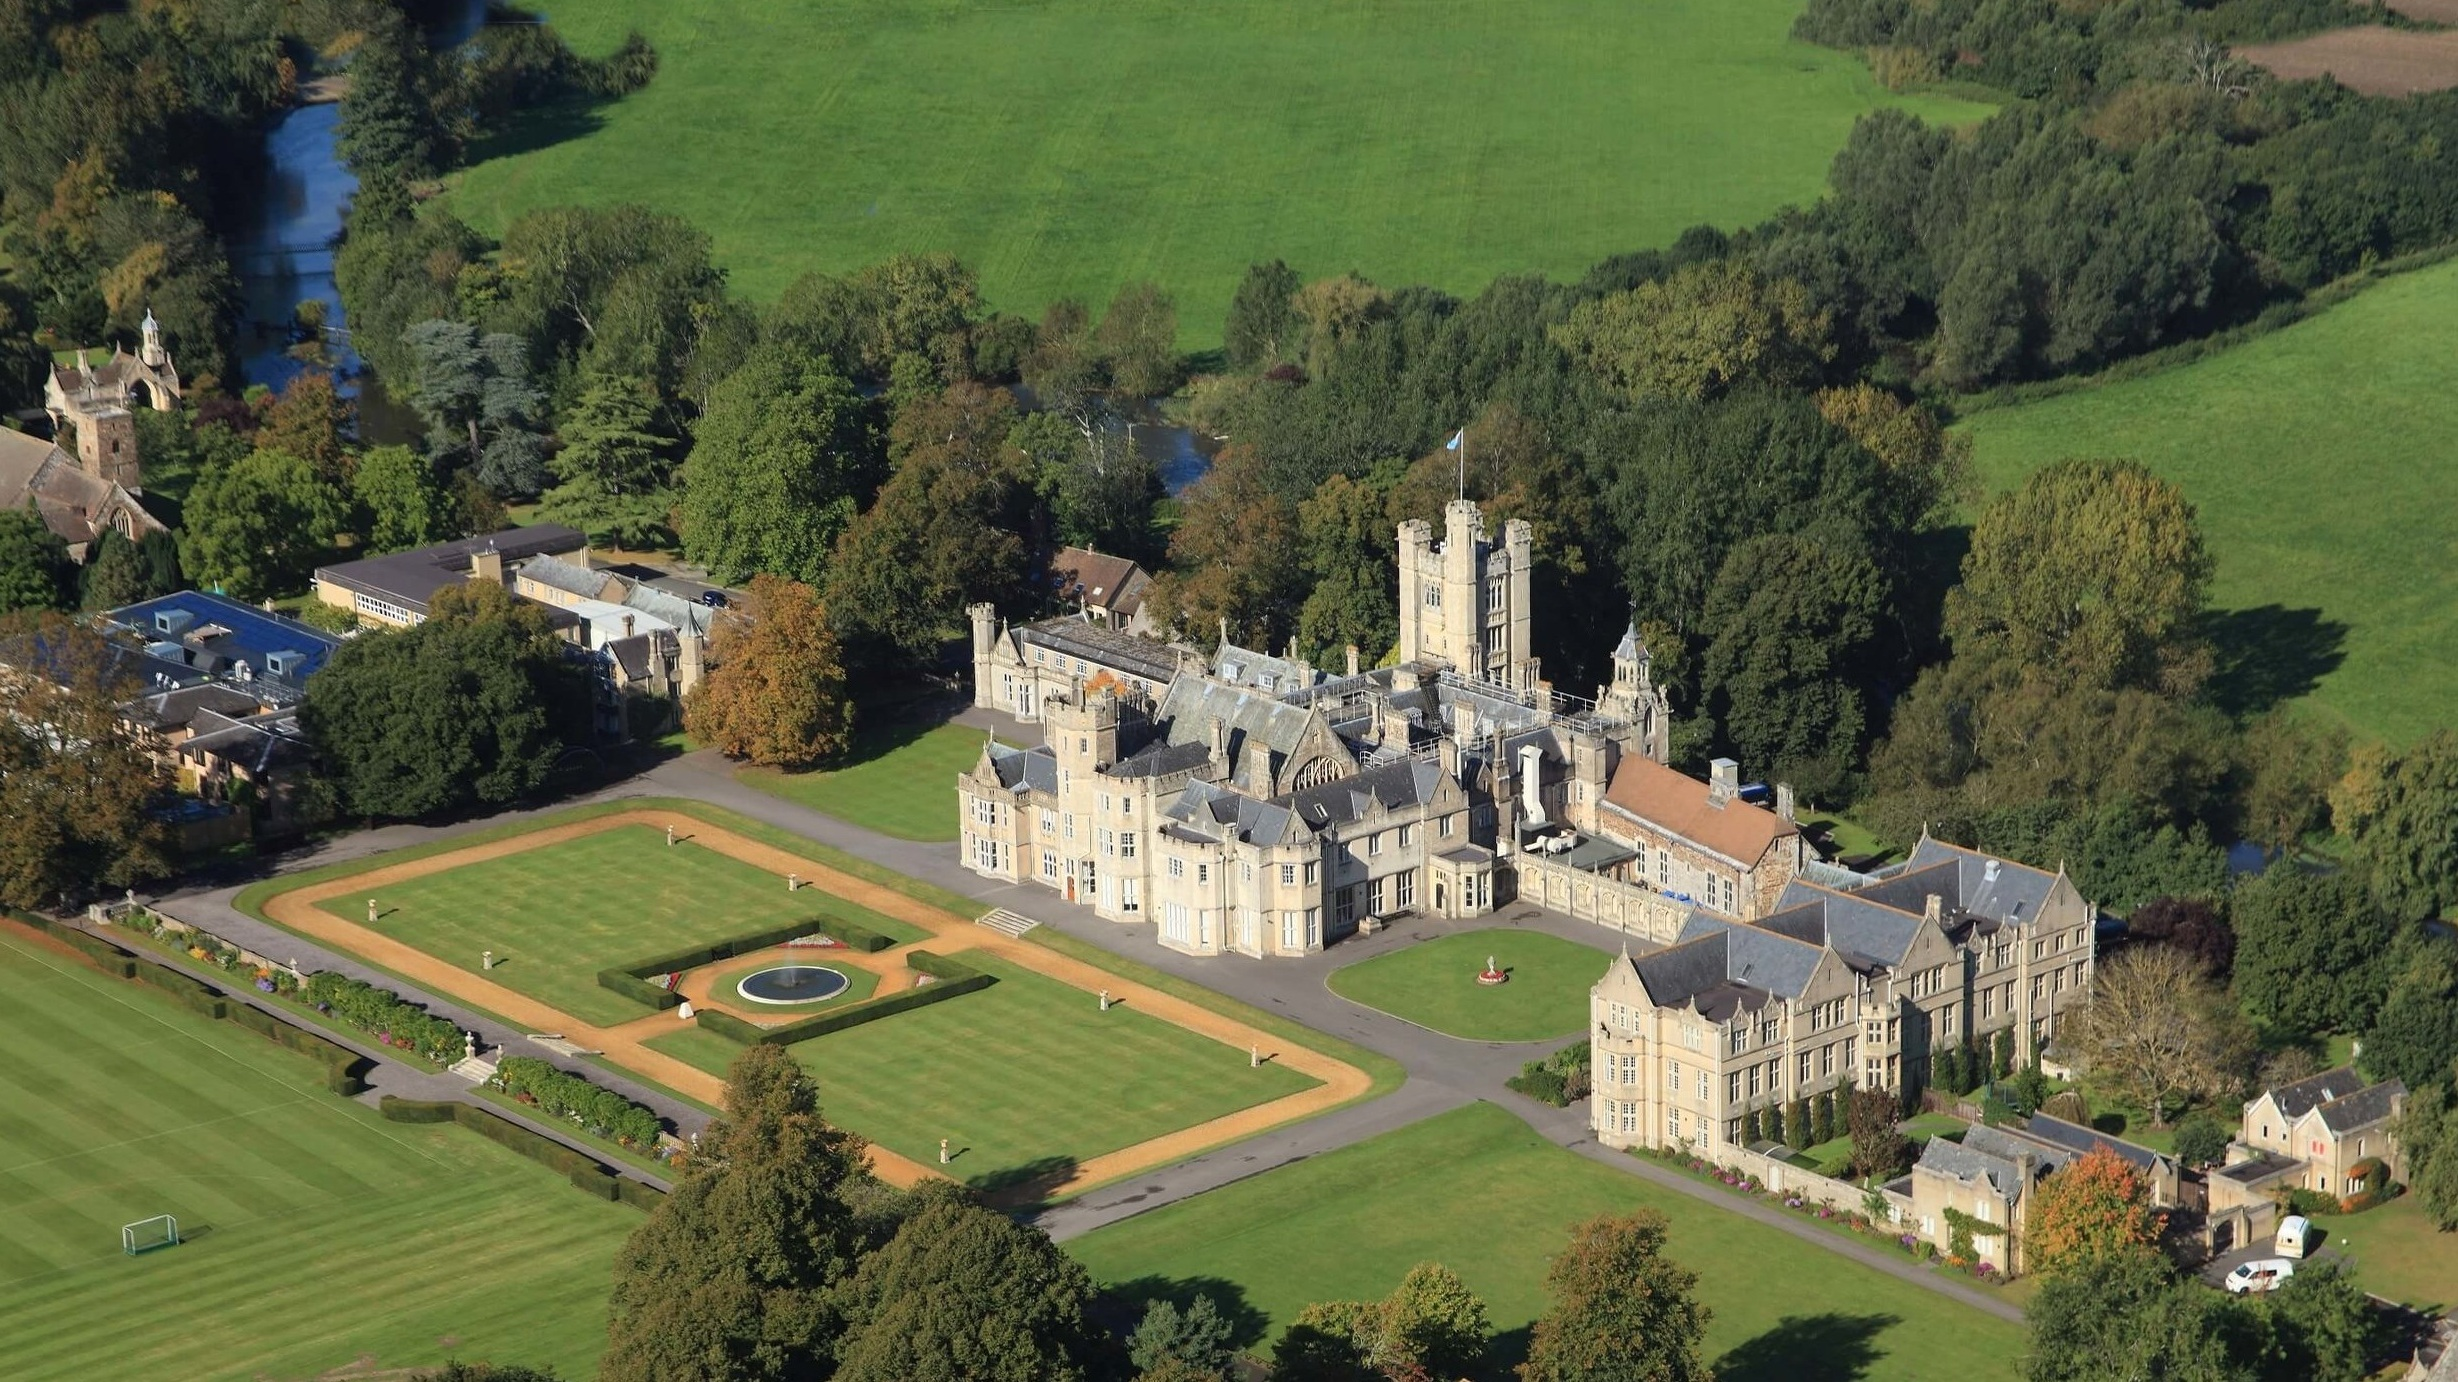 Canford SChool Aerial View